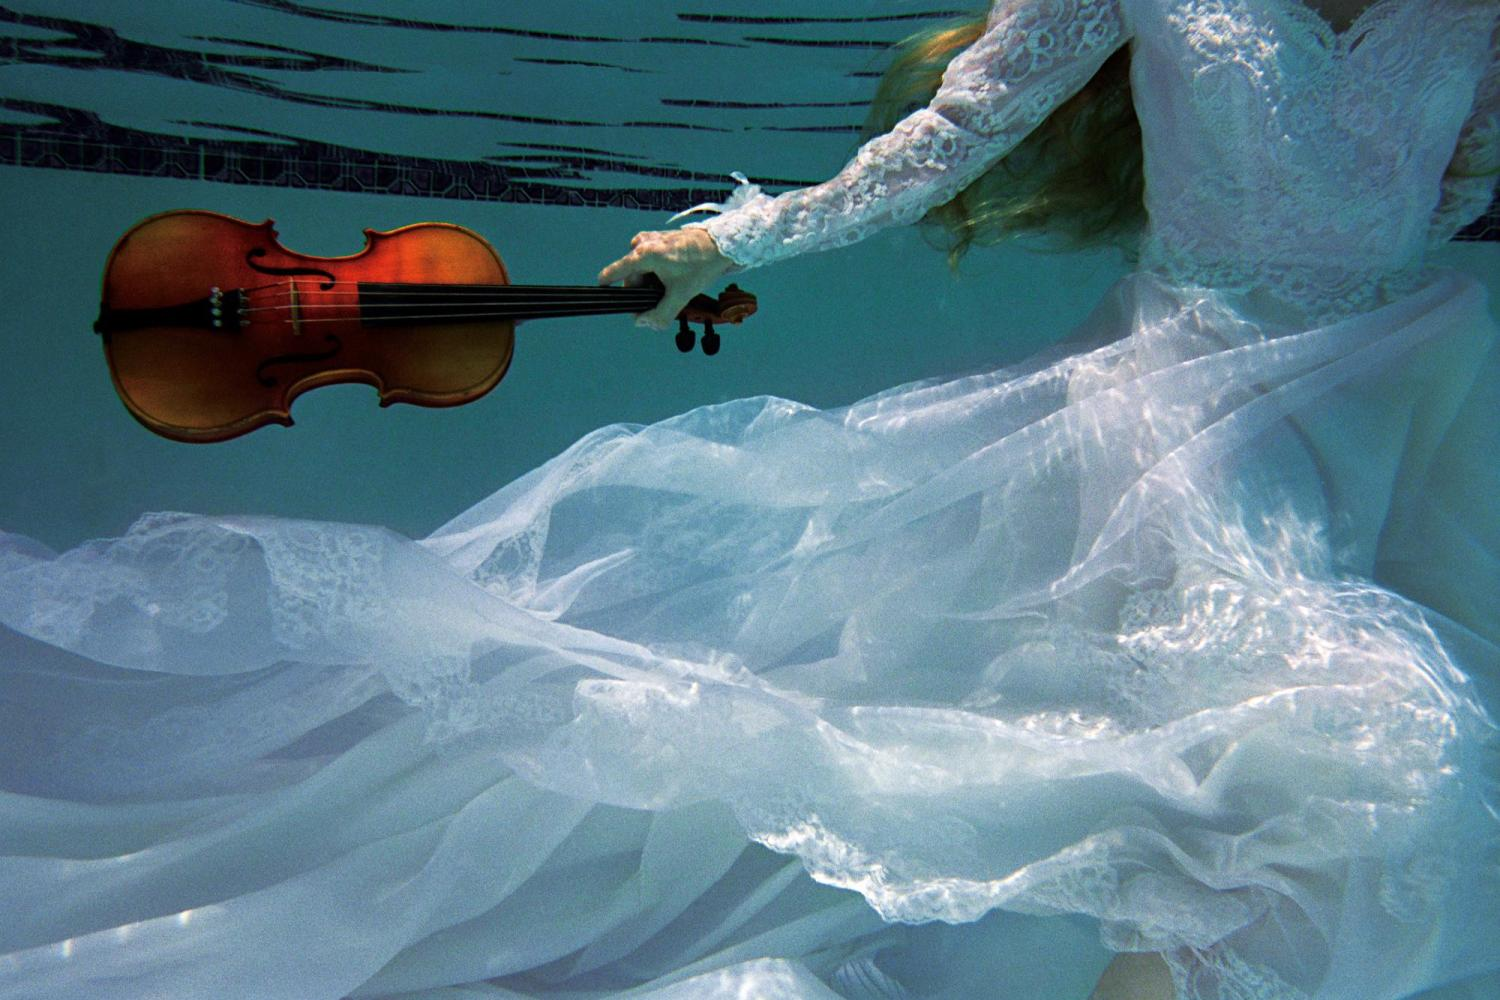 A figure in a white dress underwater hold a violin in their left hand